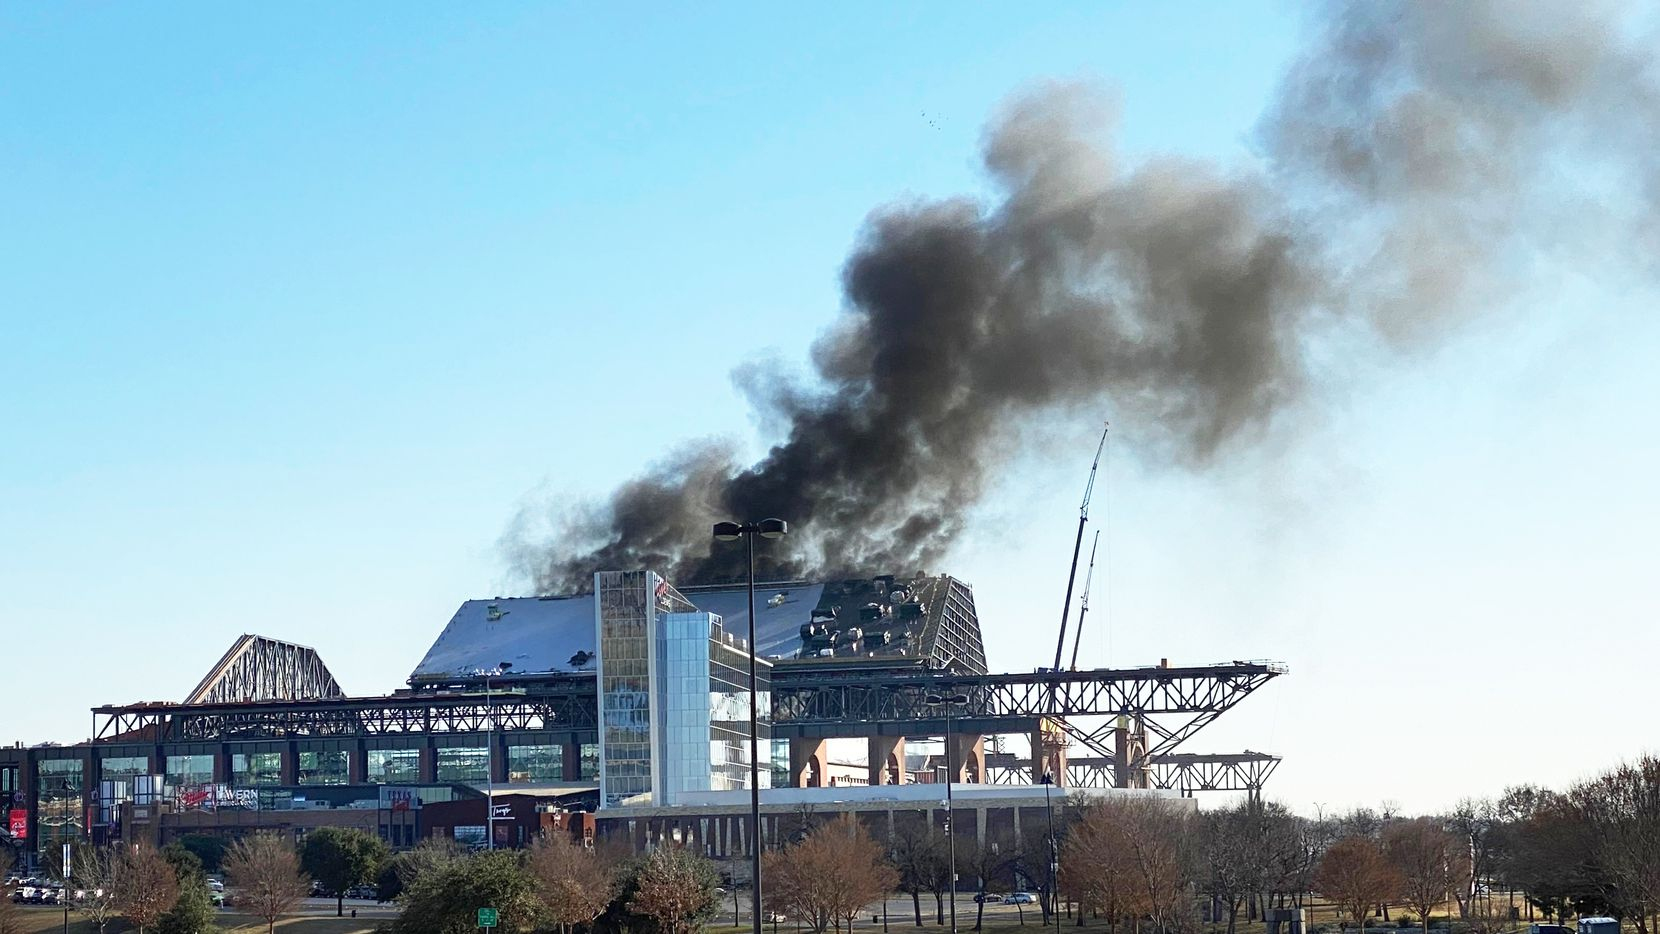 A fire broke out Saturday at the new Texas Rangers ballpark under construction in Arlington. The $1.2 billion retractable-roof stadium is expected to open for the 2020 season.